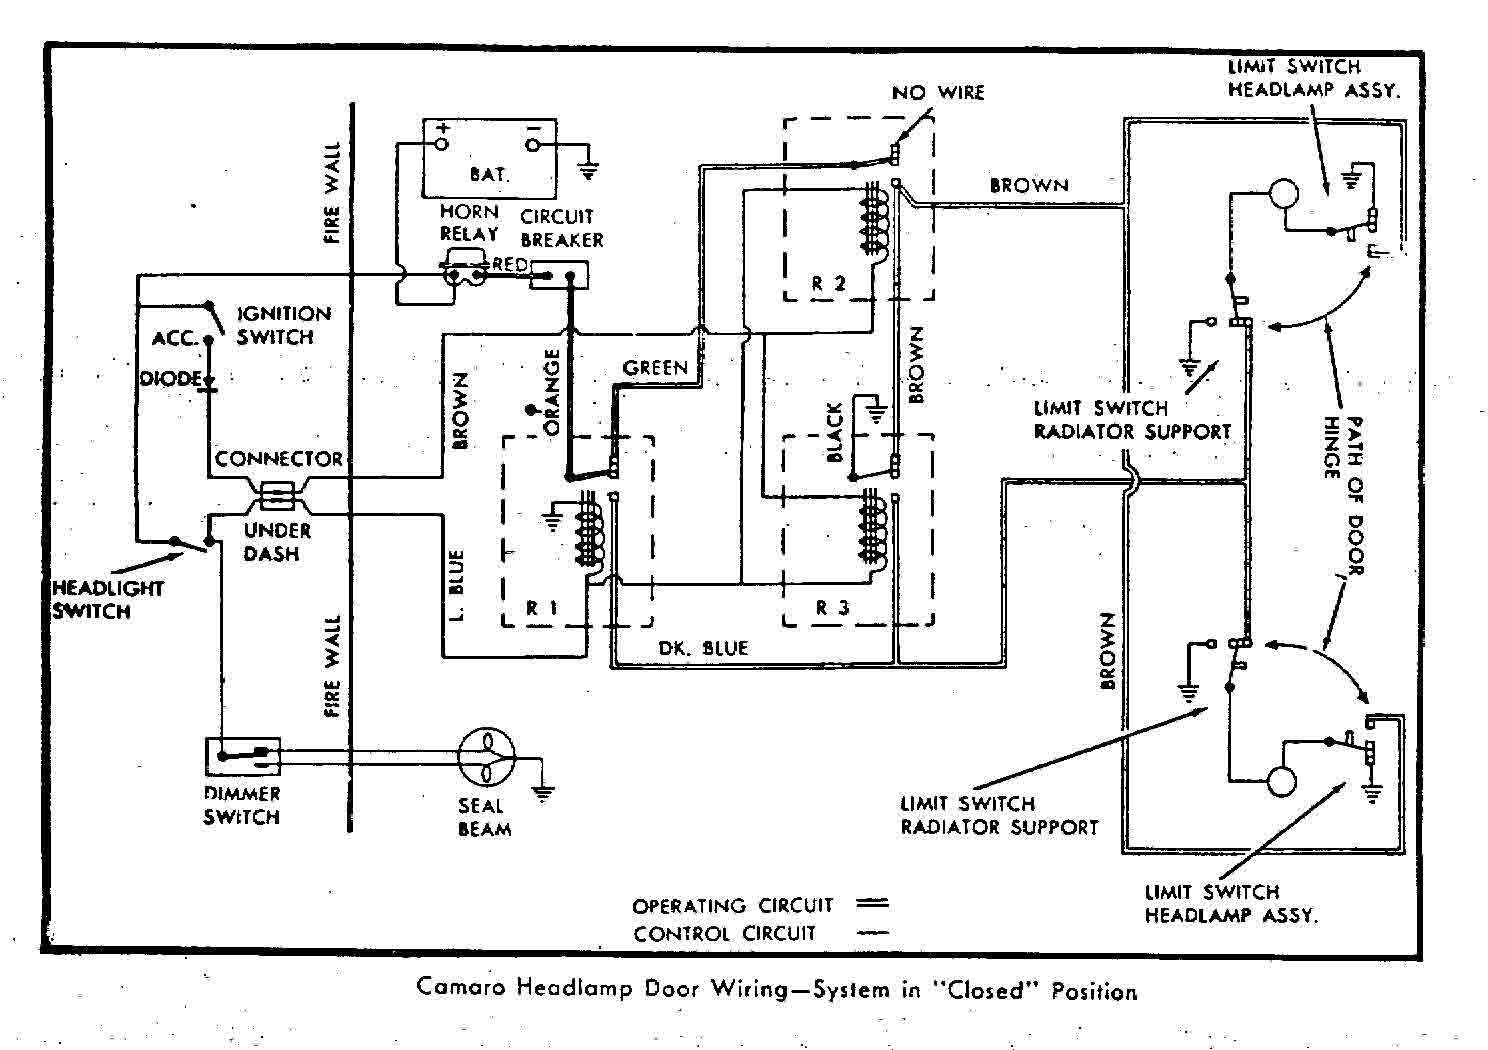 70 Chevelle Fuse Box Wiring Library 1967 Charger Diagram 80 Camaro Detailed Schematics 1970 1968